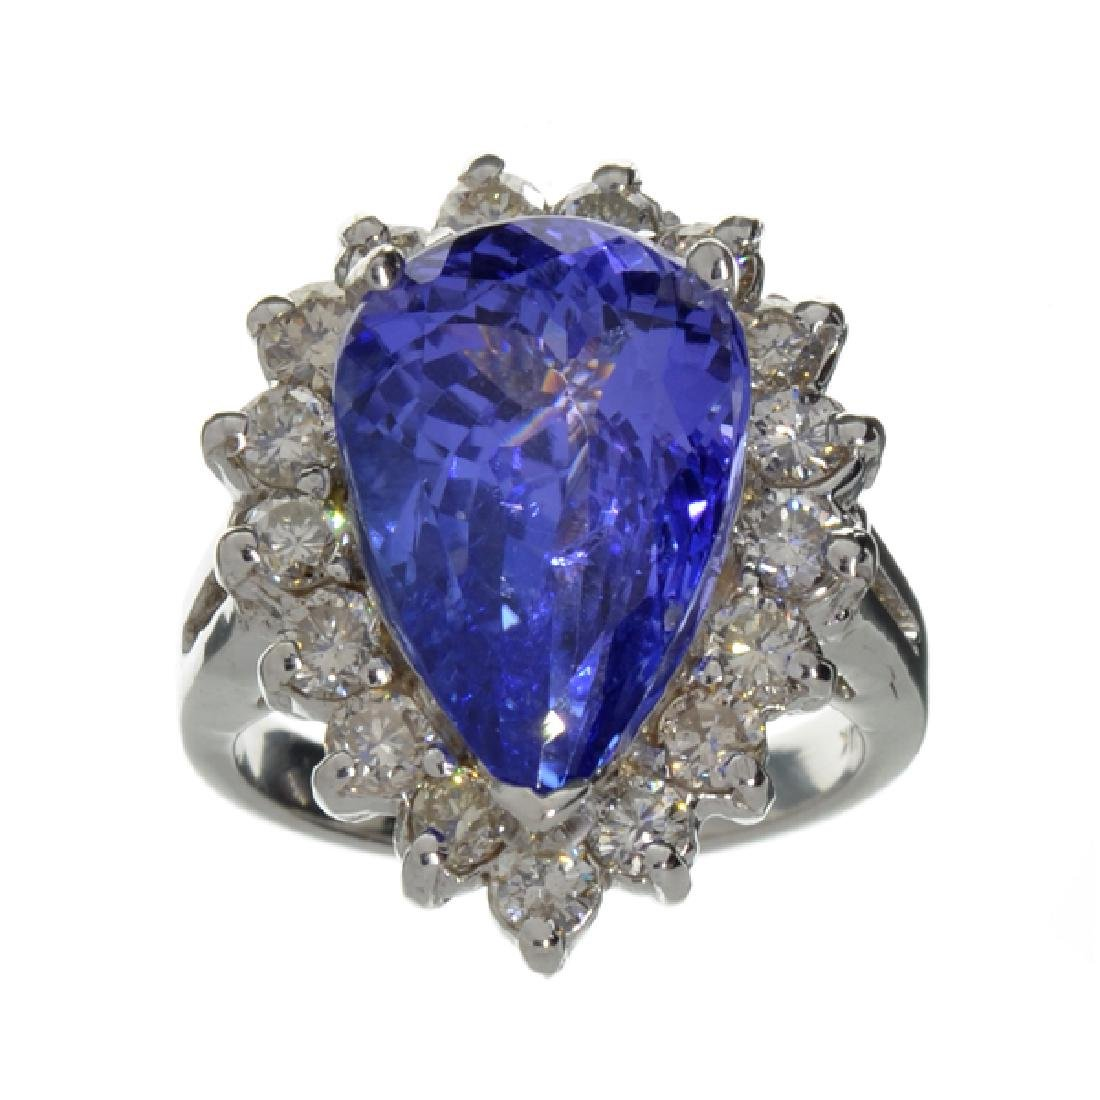 APP: 24.1k 14 kt. White Gold, 7.10CT Pear Cut Tanzanite